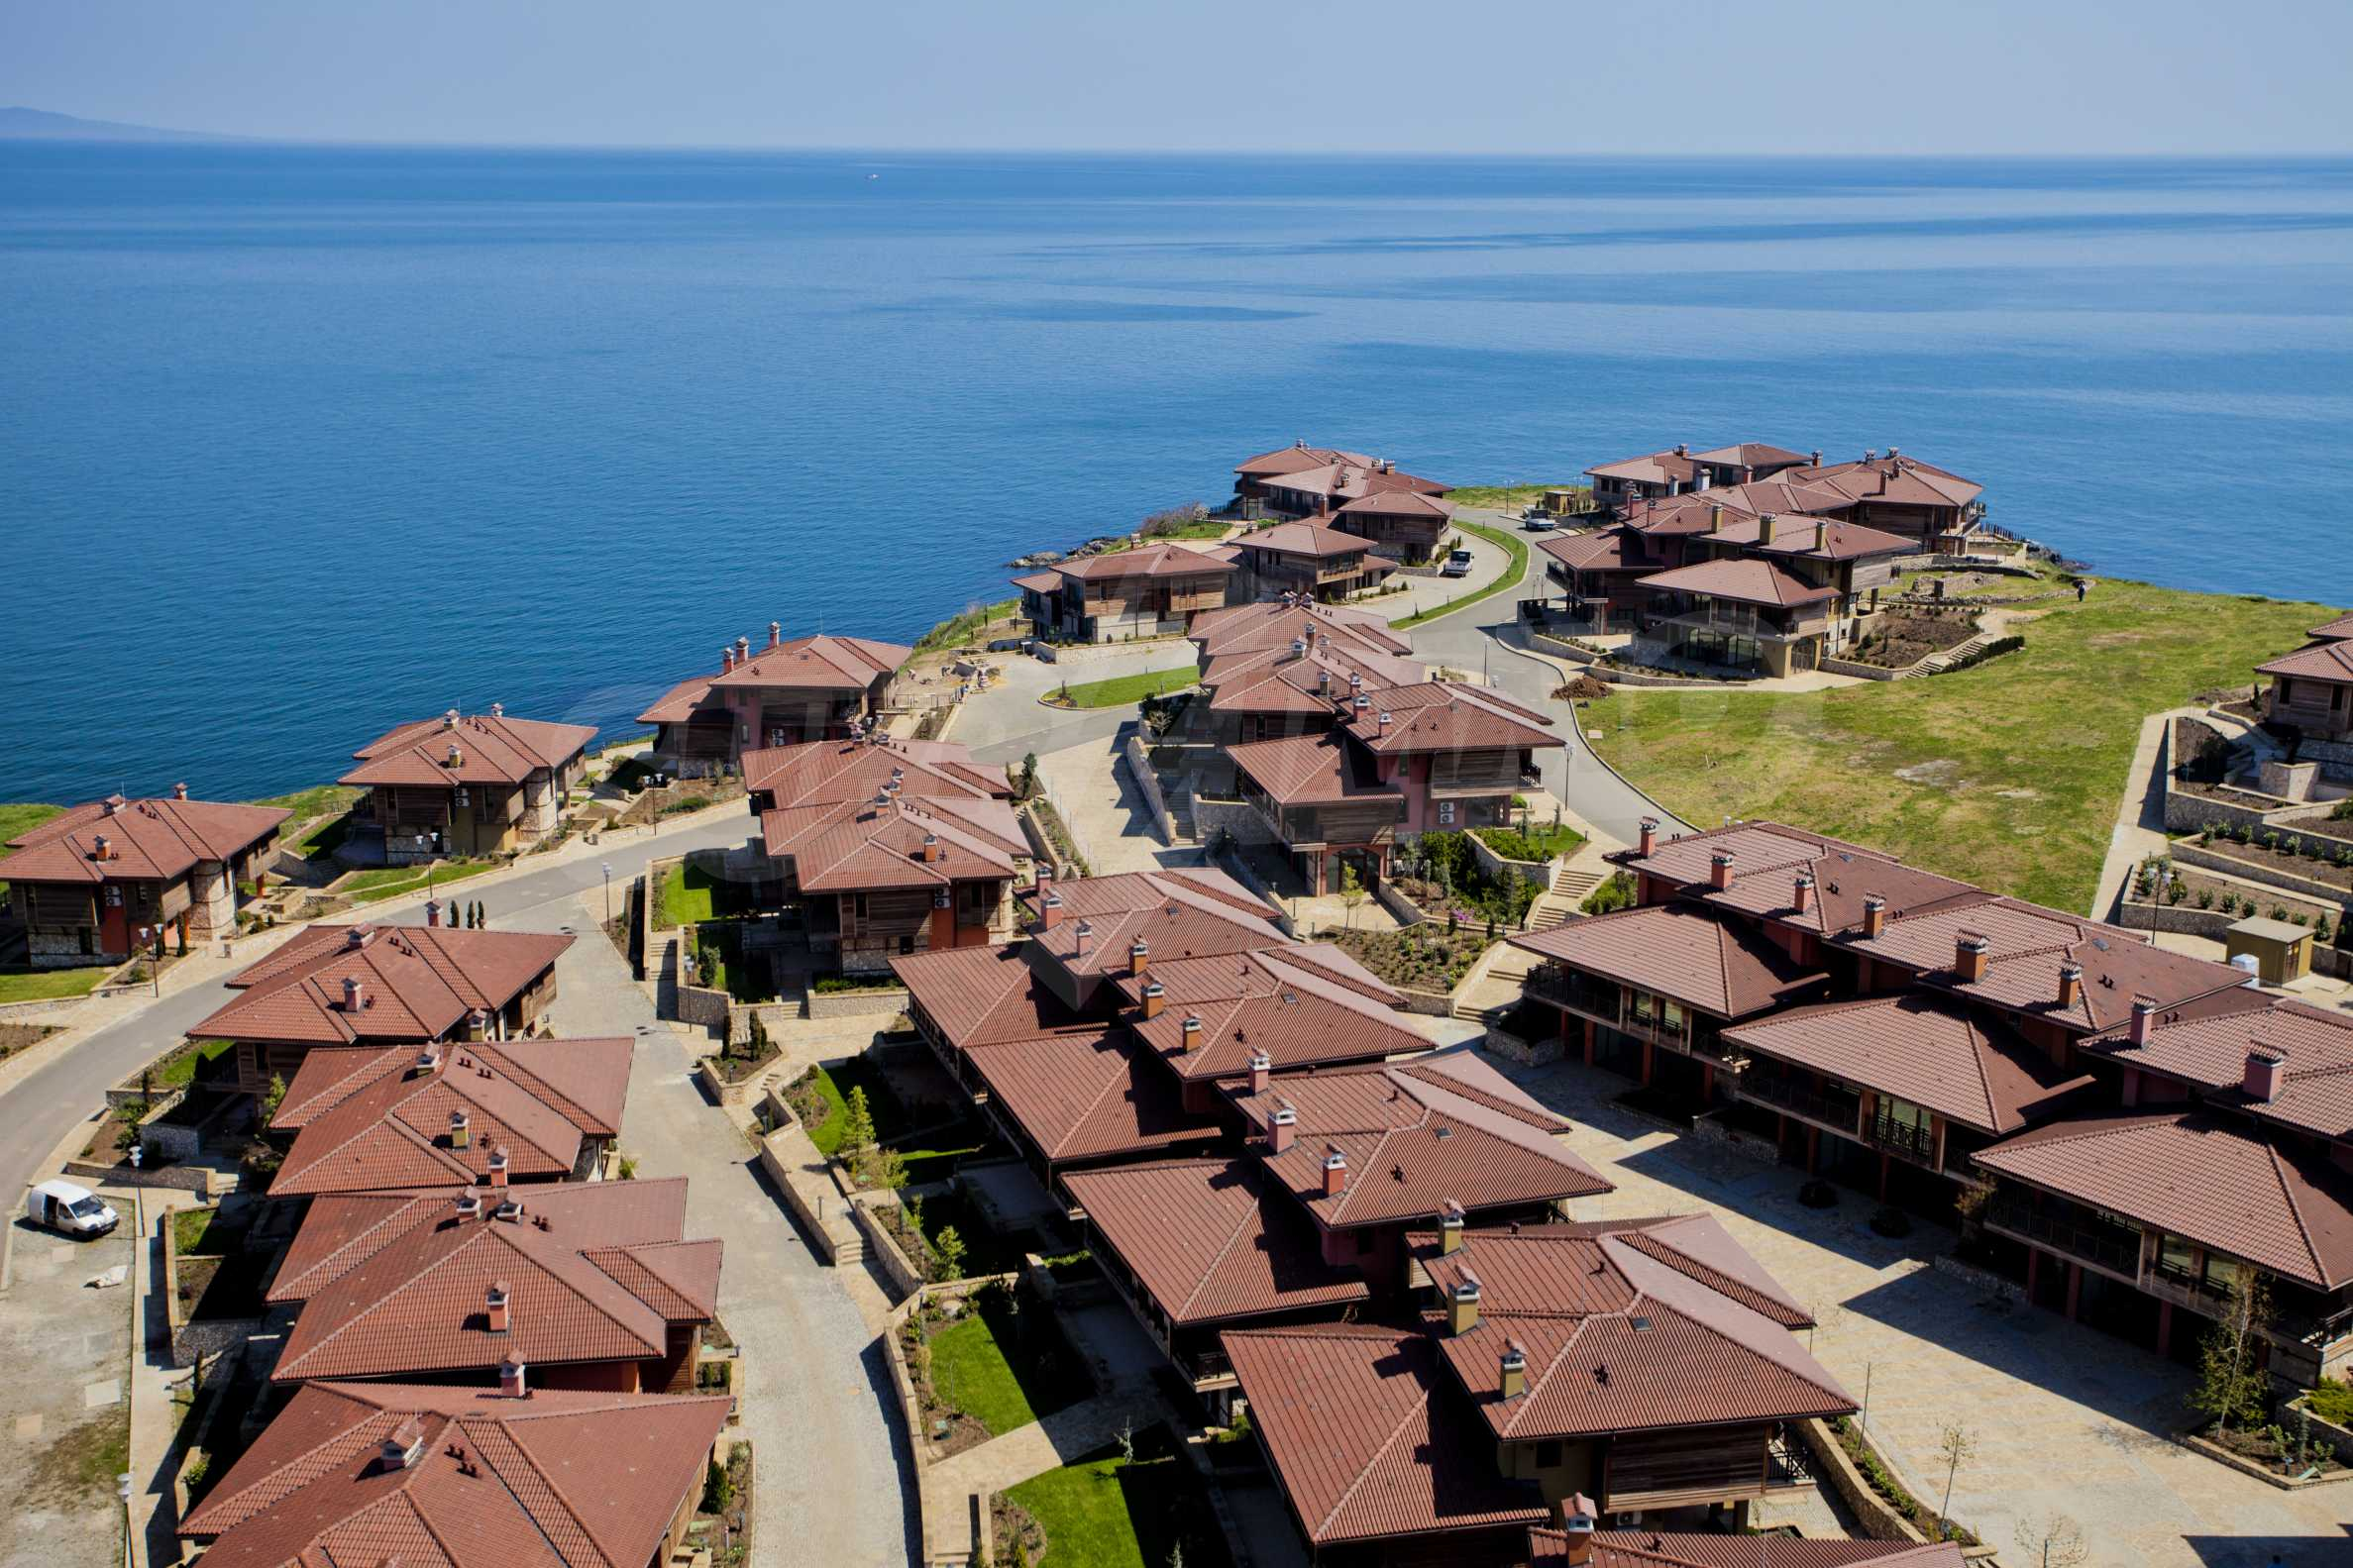 Sozopolis - unique coastal complex of duplex houses and apartments near Sozopol 1